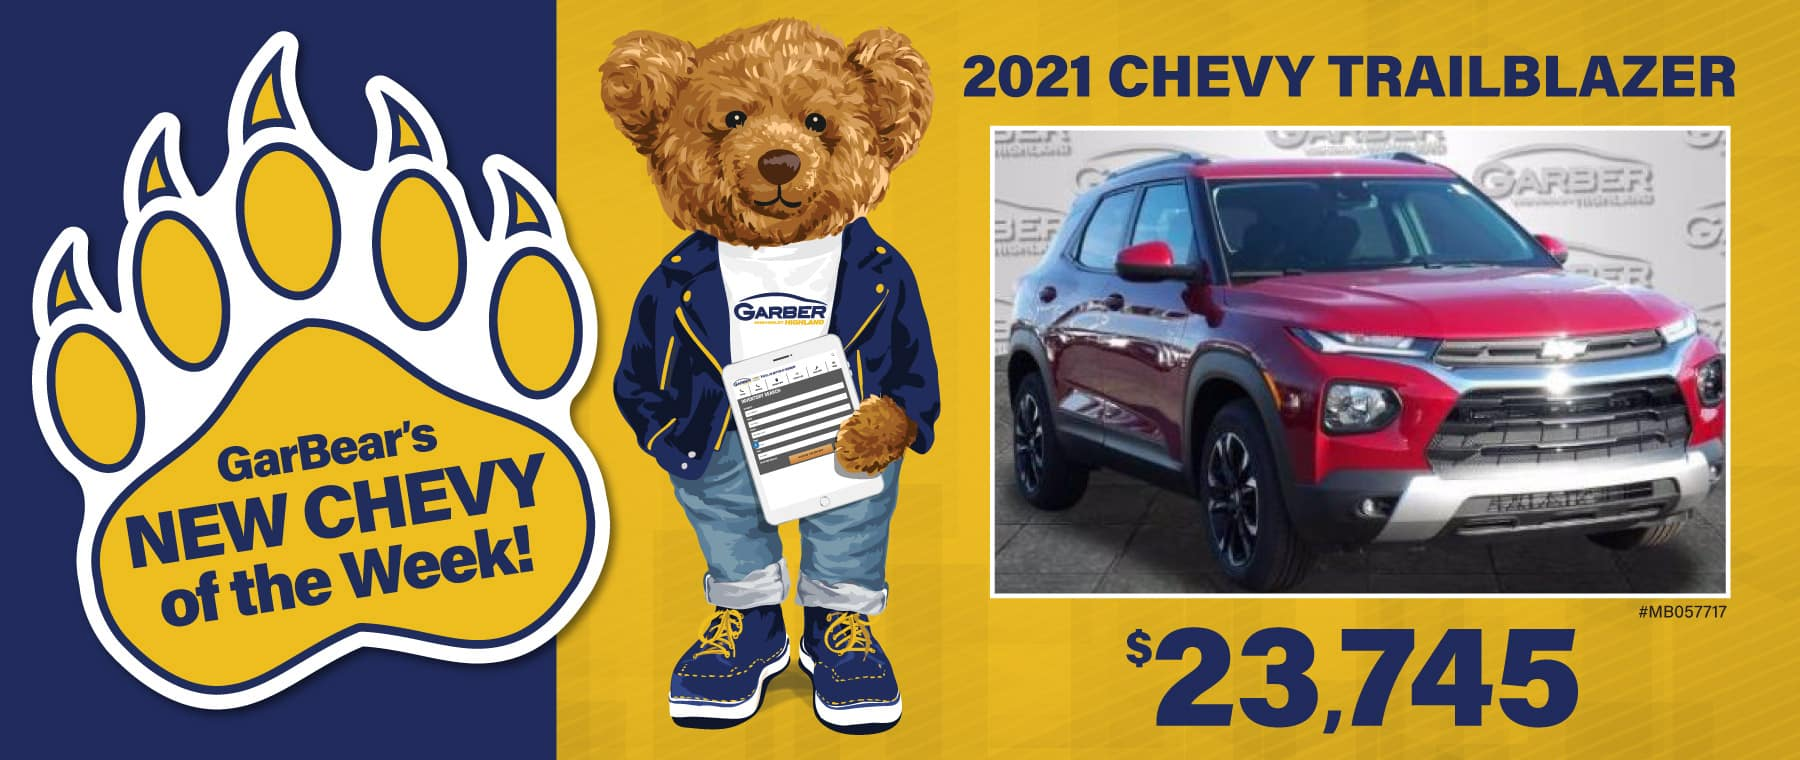 2021 Chevy Trailblazer $23745